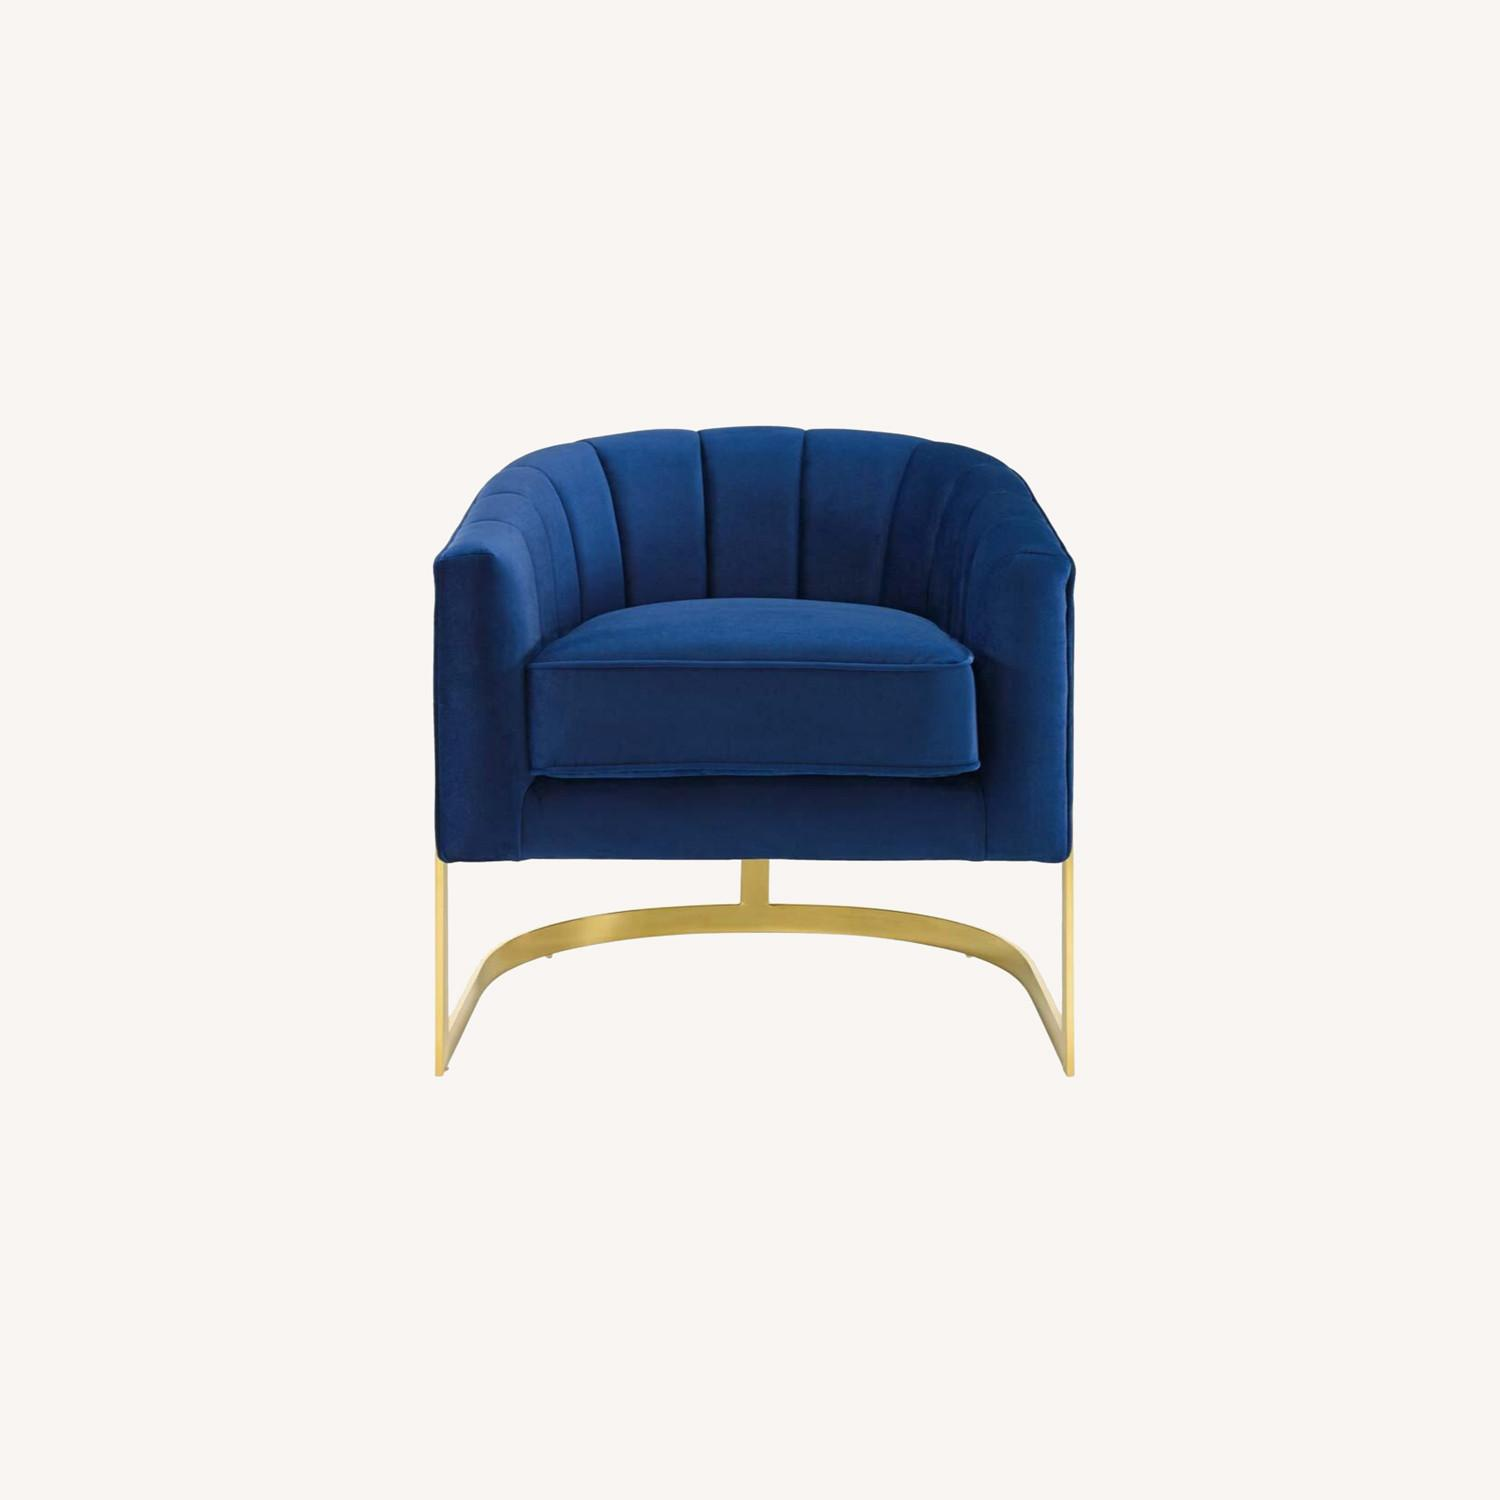 Accent Chair In Navy Velvet W/ Channel Tufting - image-6